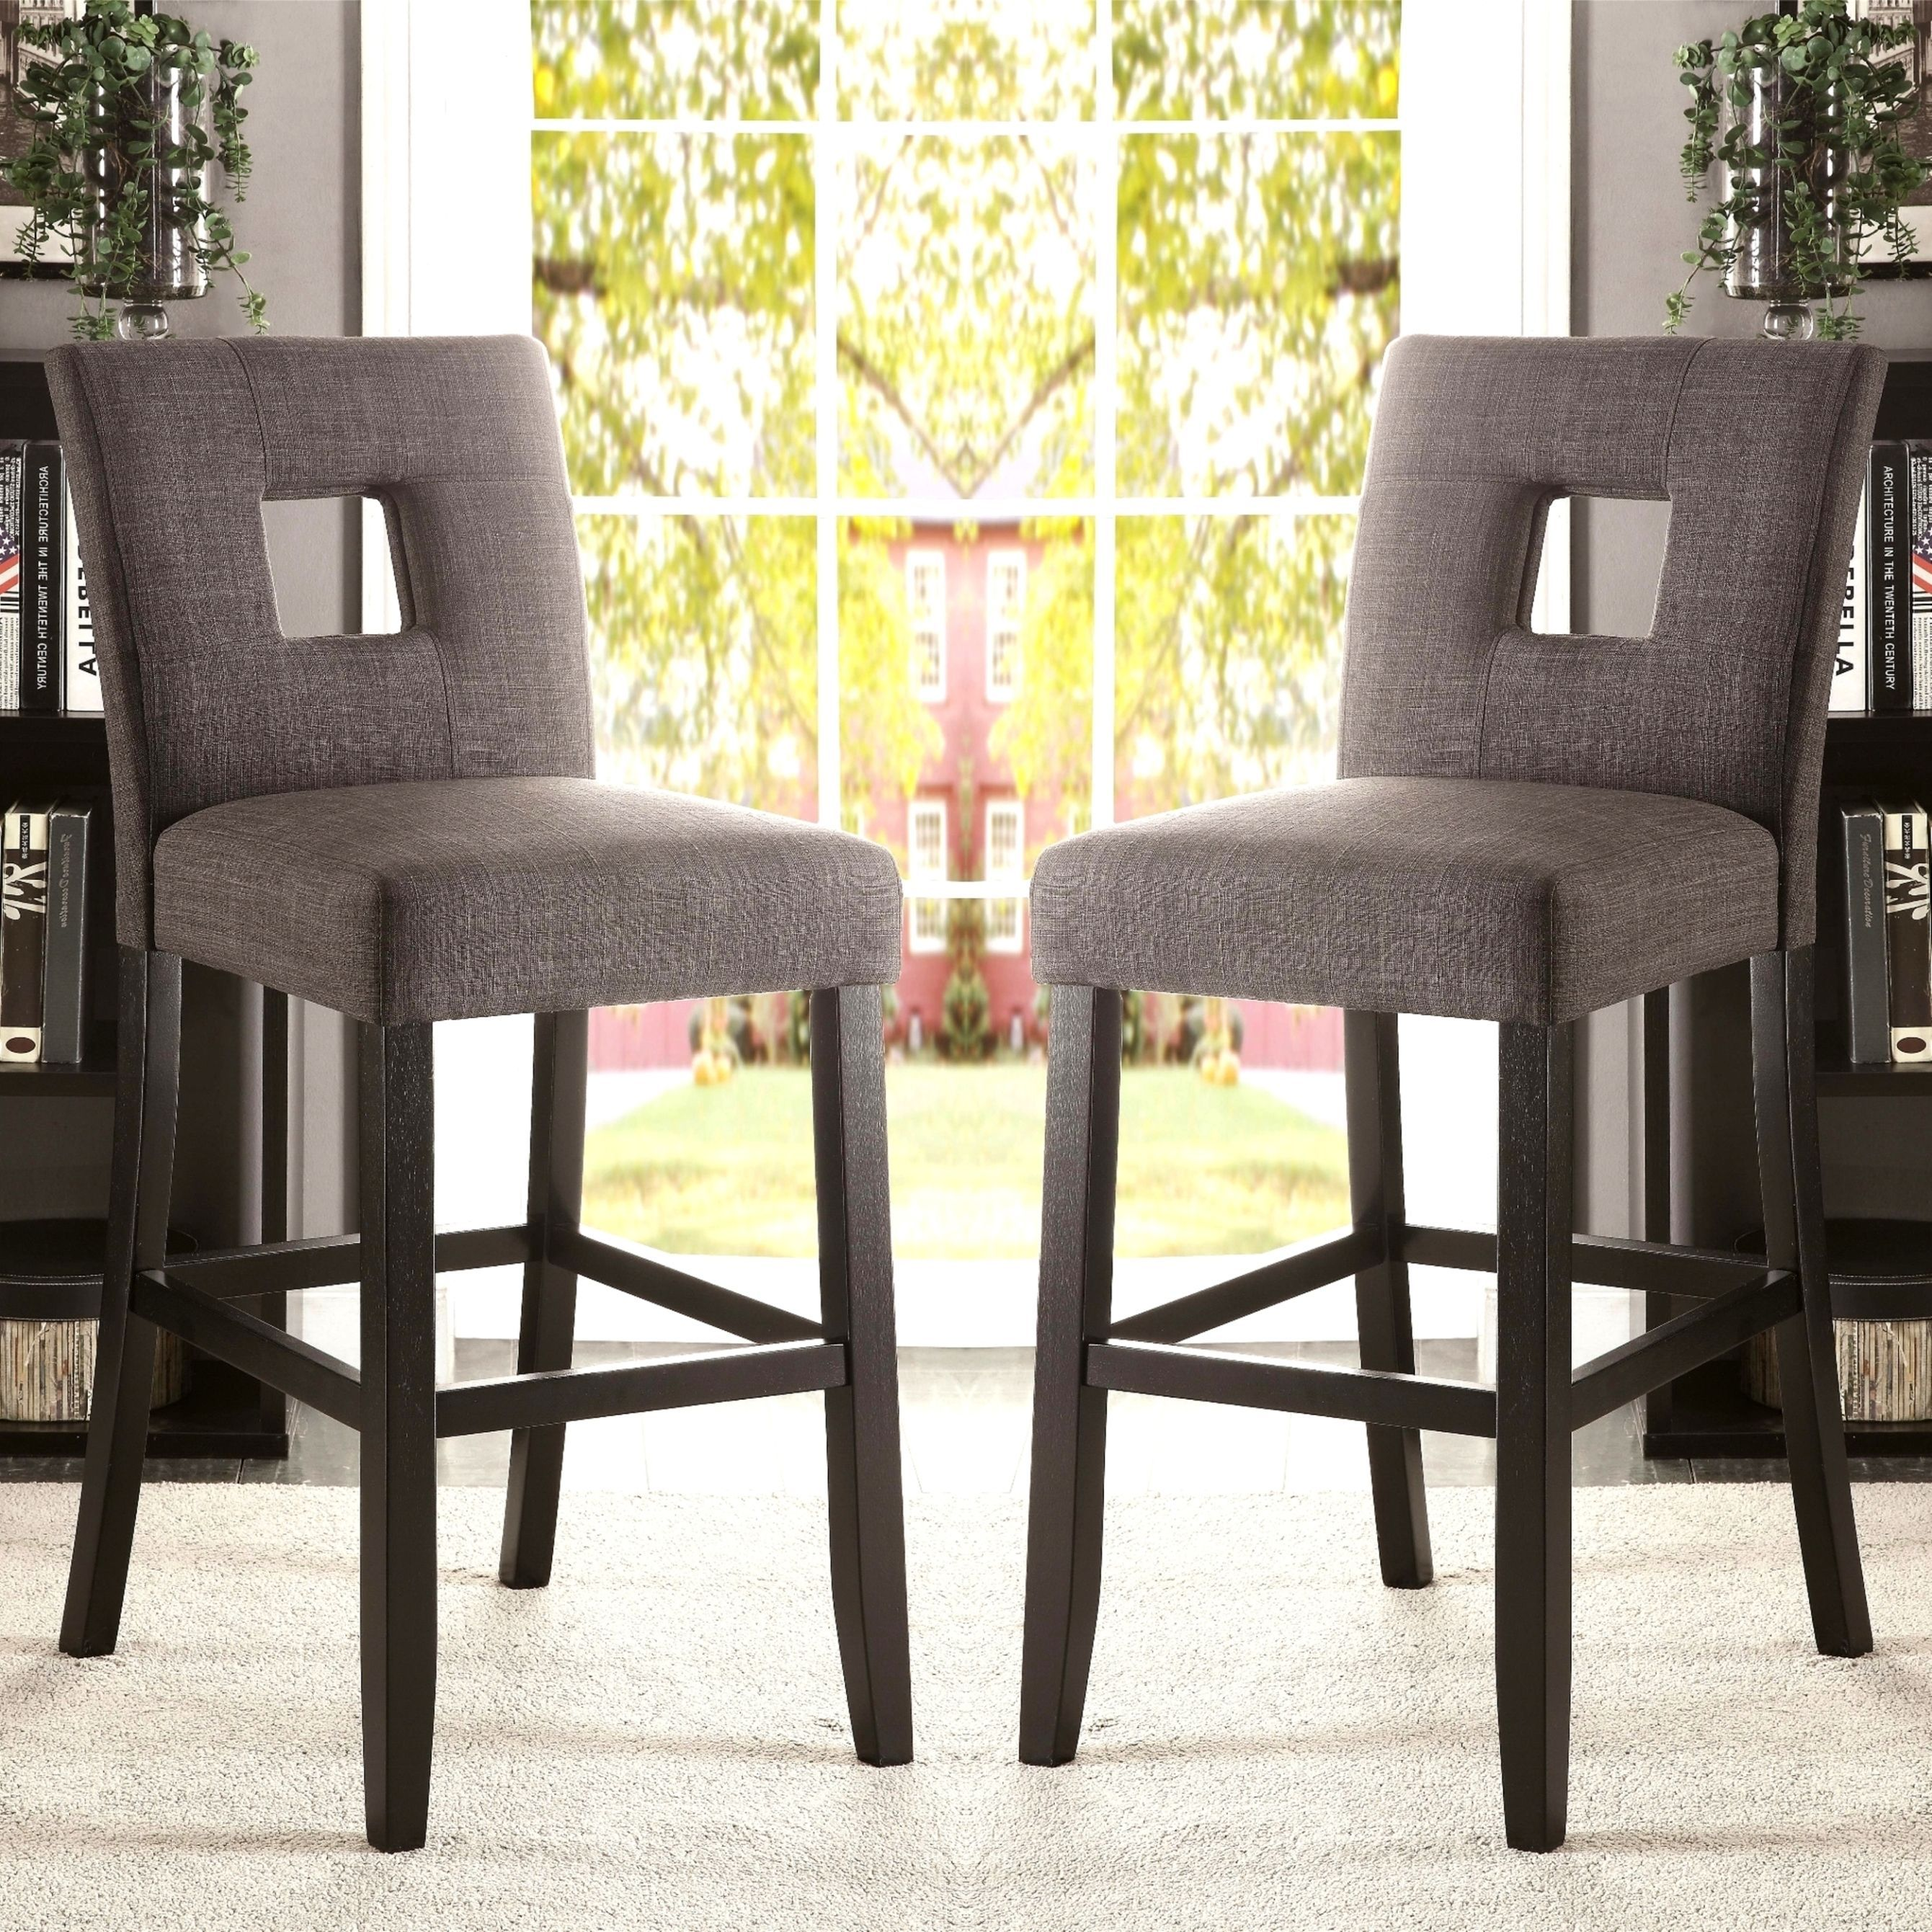 tufted contemporary grey baxton fabric studio ginaro modern upholstered stools and swivel bar button stool